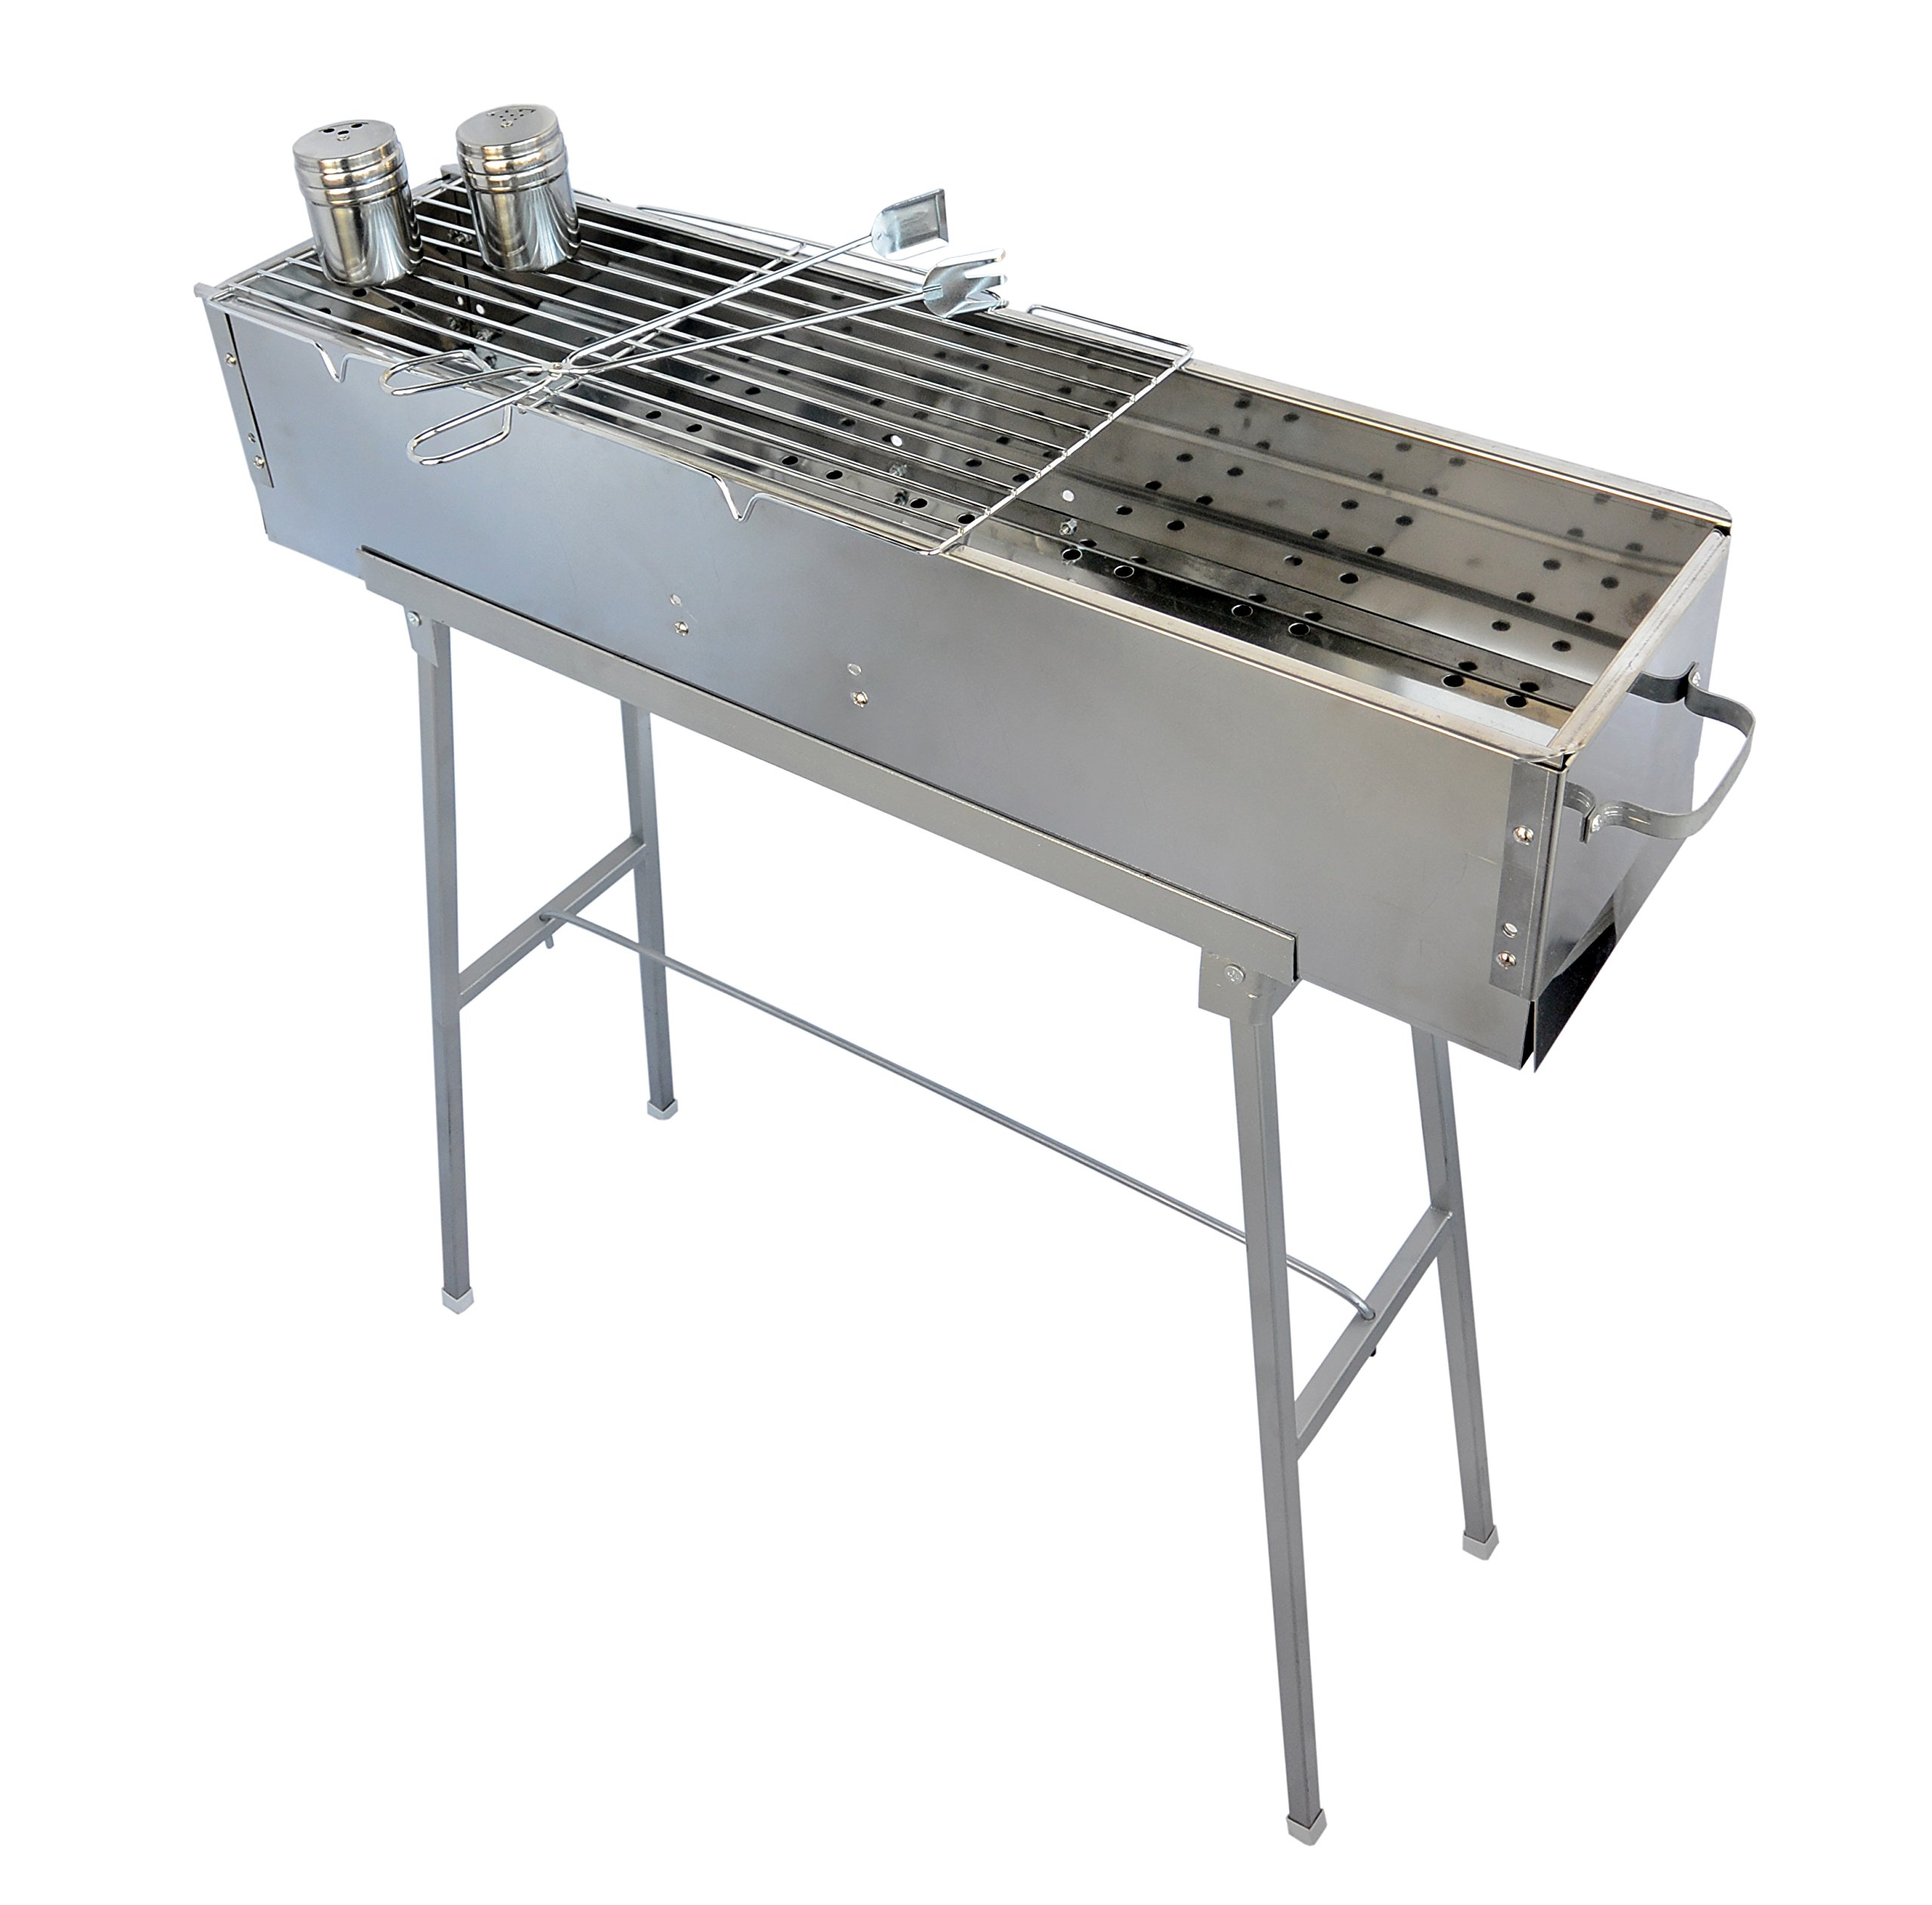 "Party Griller 32"" Stainless Steel Charcoal Grill w/ Straight Grid Grate – Portable BBQ Grill, Yakitori Grill, Kebab Grill, Satay Grill. Makes Juicy Shish Kebab, Shashlik, Spiedini on the Skewer"